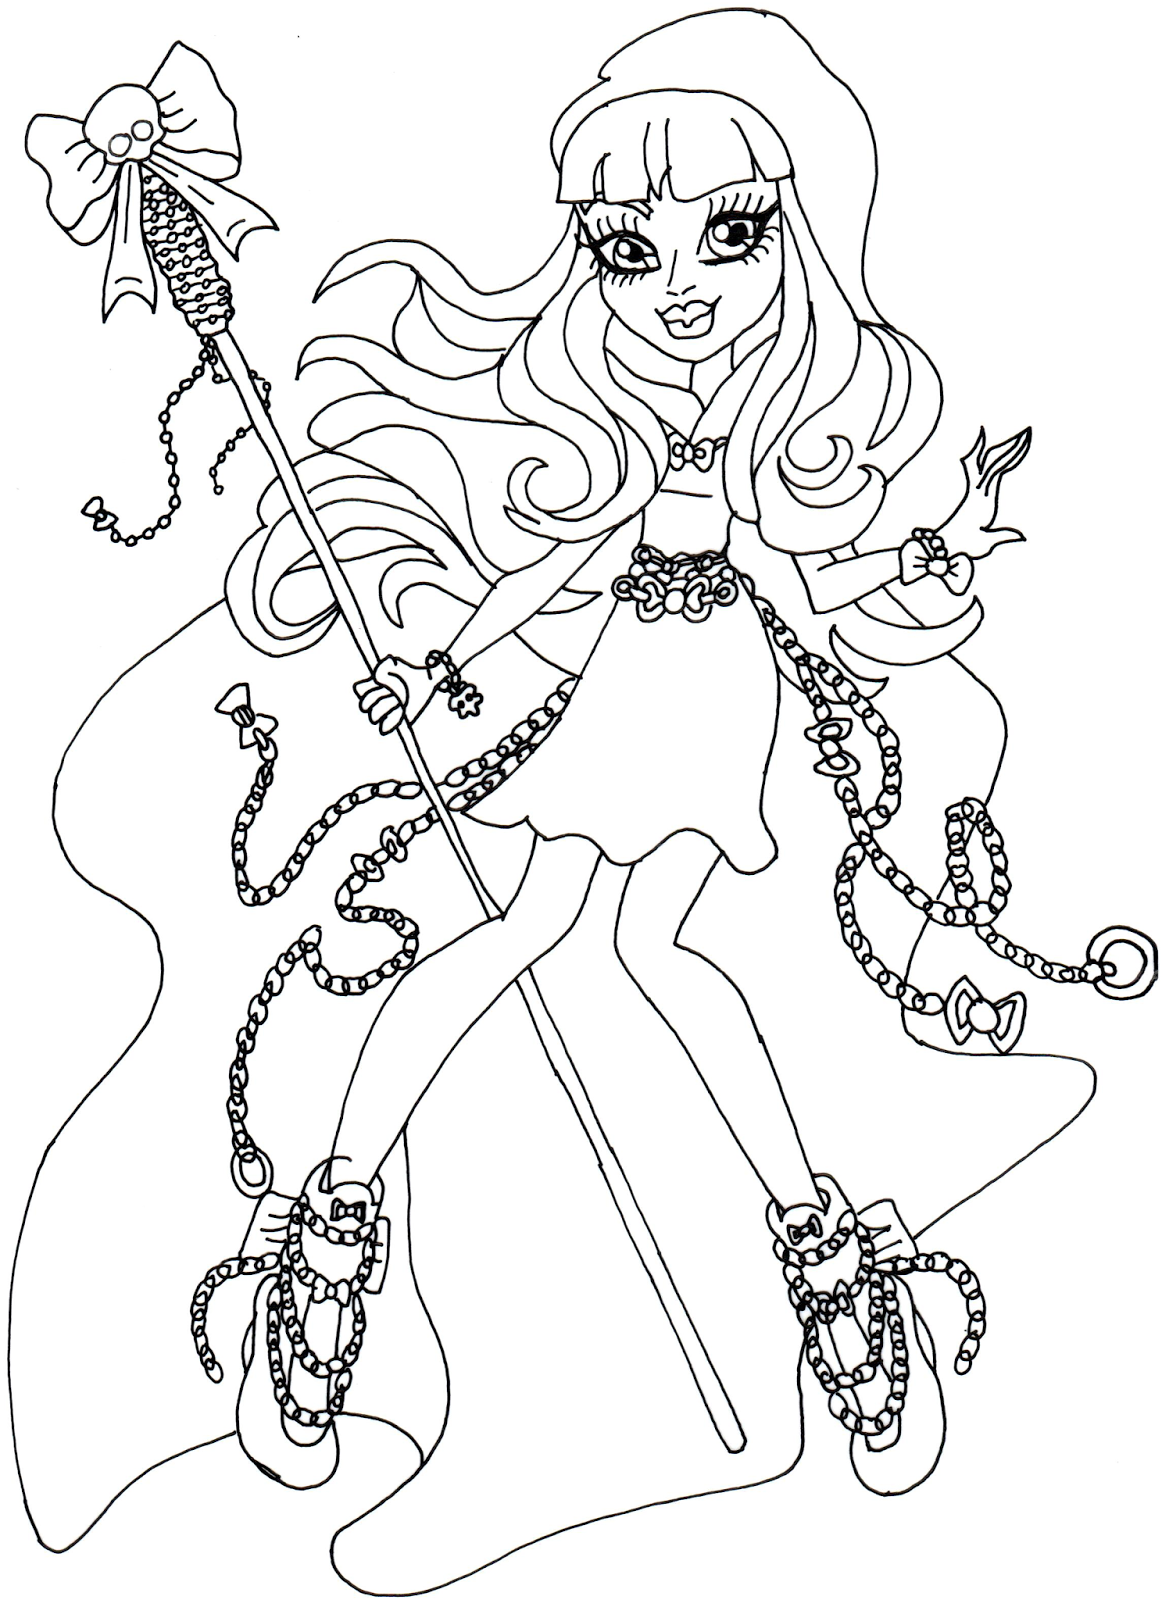 neuroblastoma survivors coloring pages - photo#2